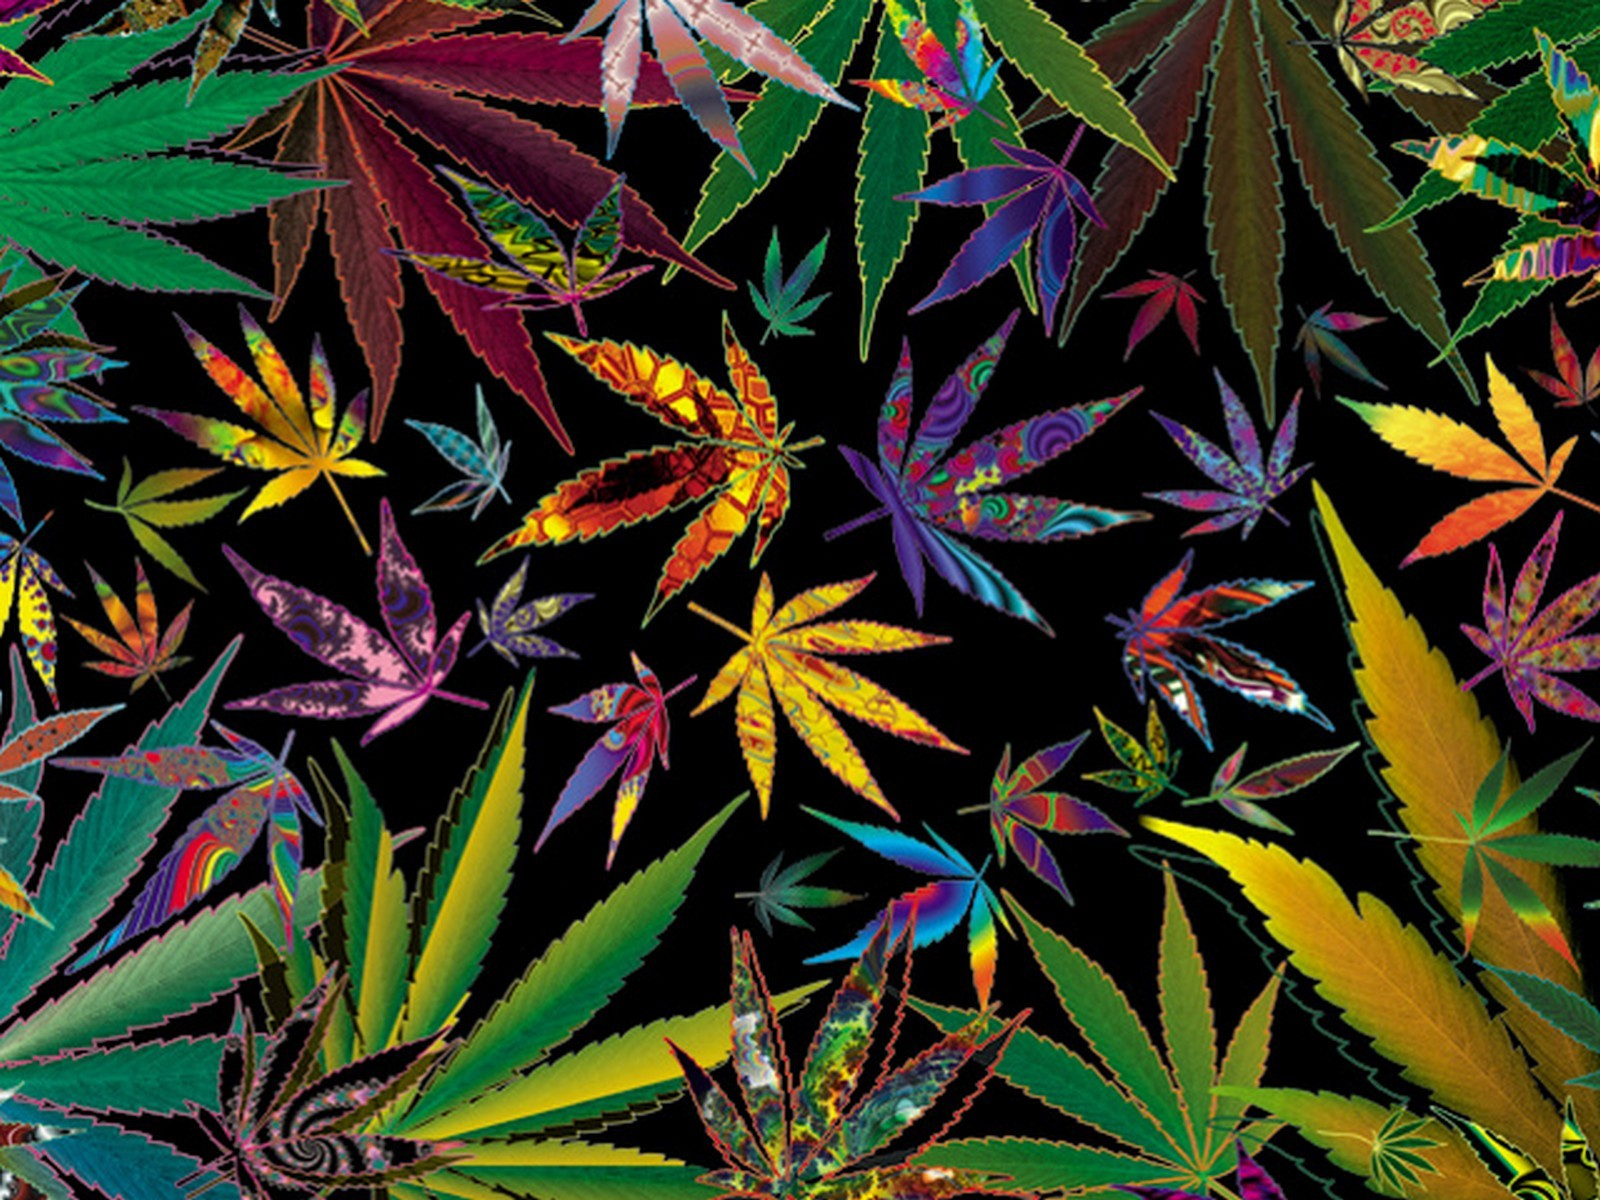 trippy stoner types Trippy Multi Pot Leaves for your weed wallpaper 1600x1200